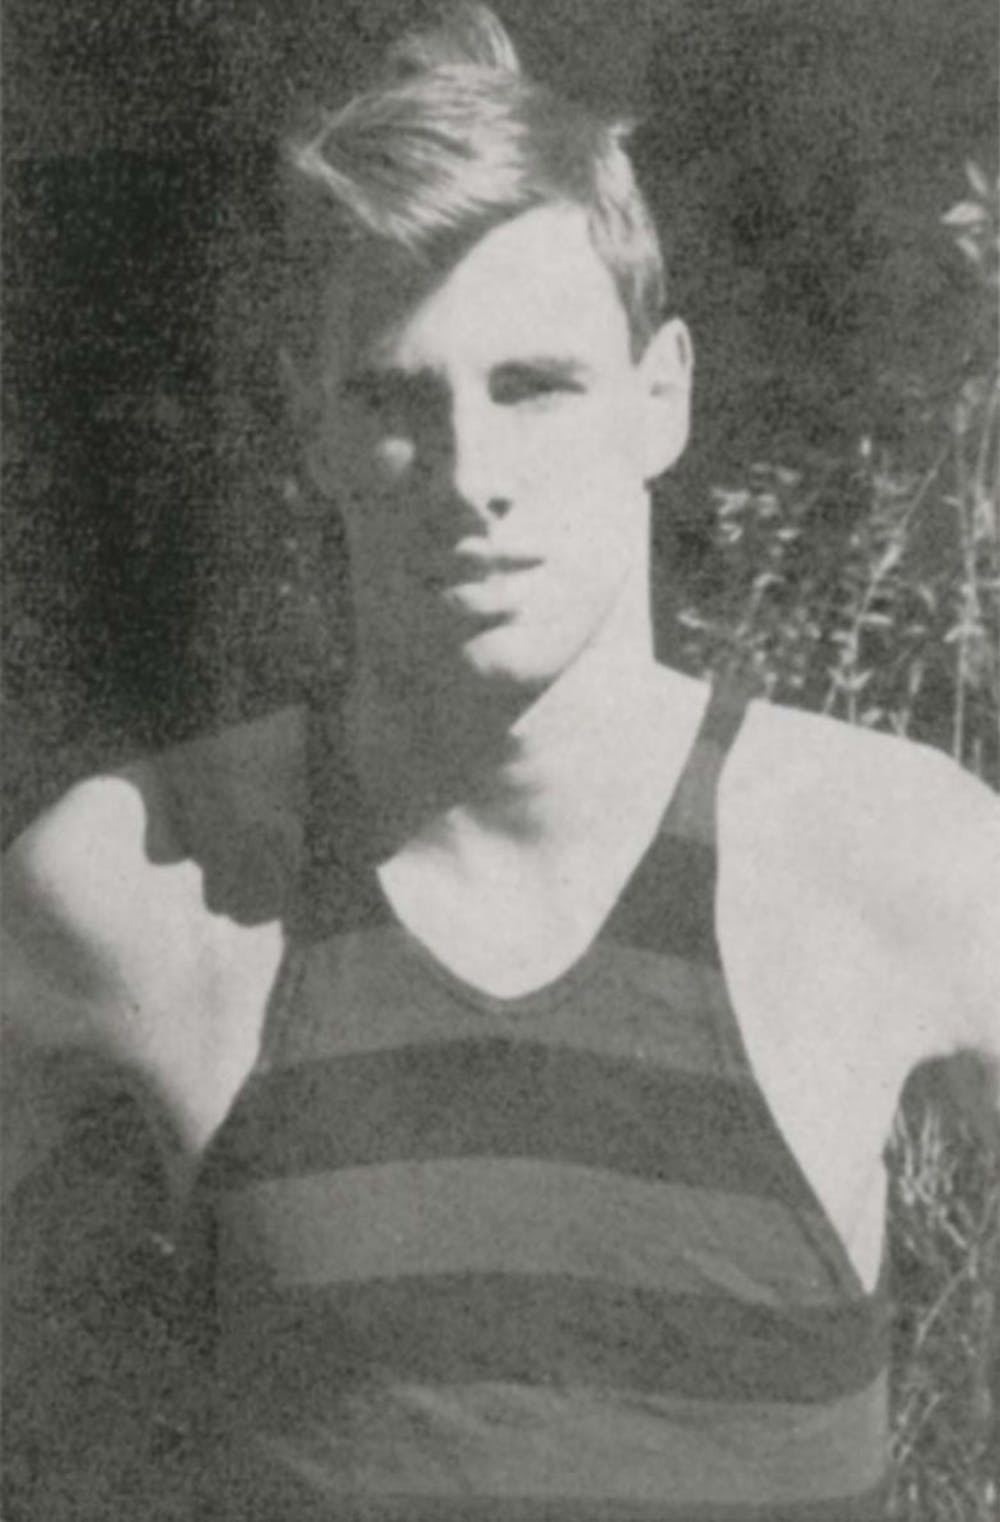 Bruce Dern ran on Penn's track team during his time at Penn in the 1950s. He was kicked off the team in 1957 after refusing to shave his sideburns.